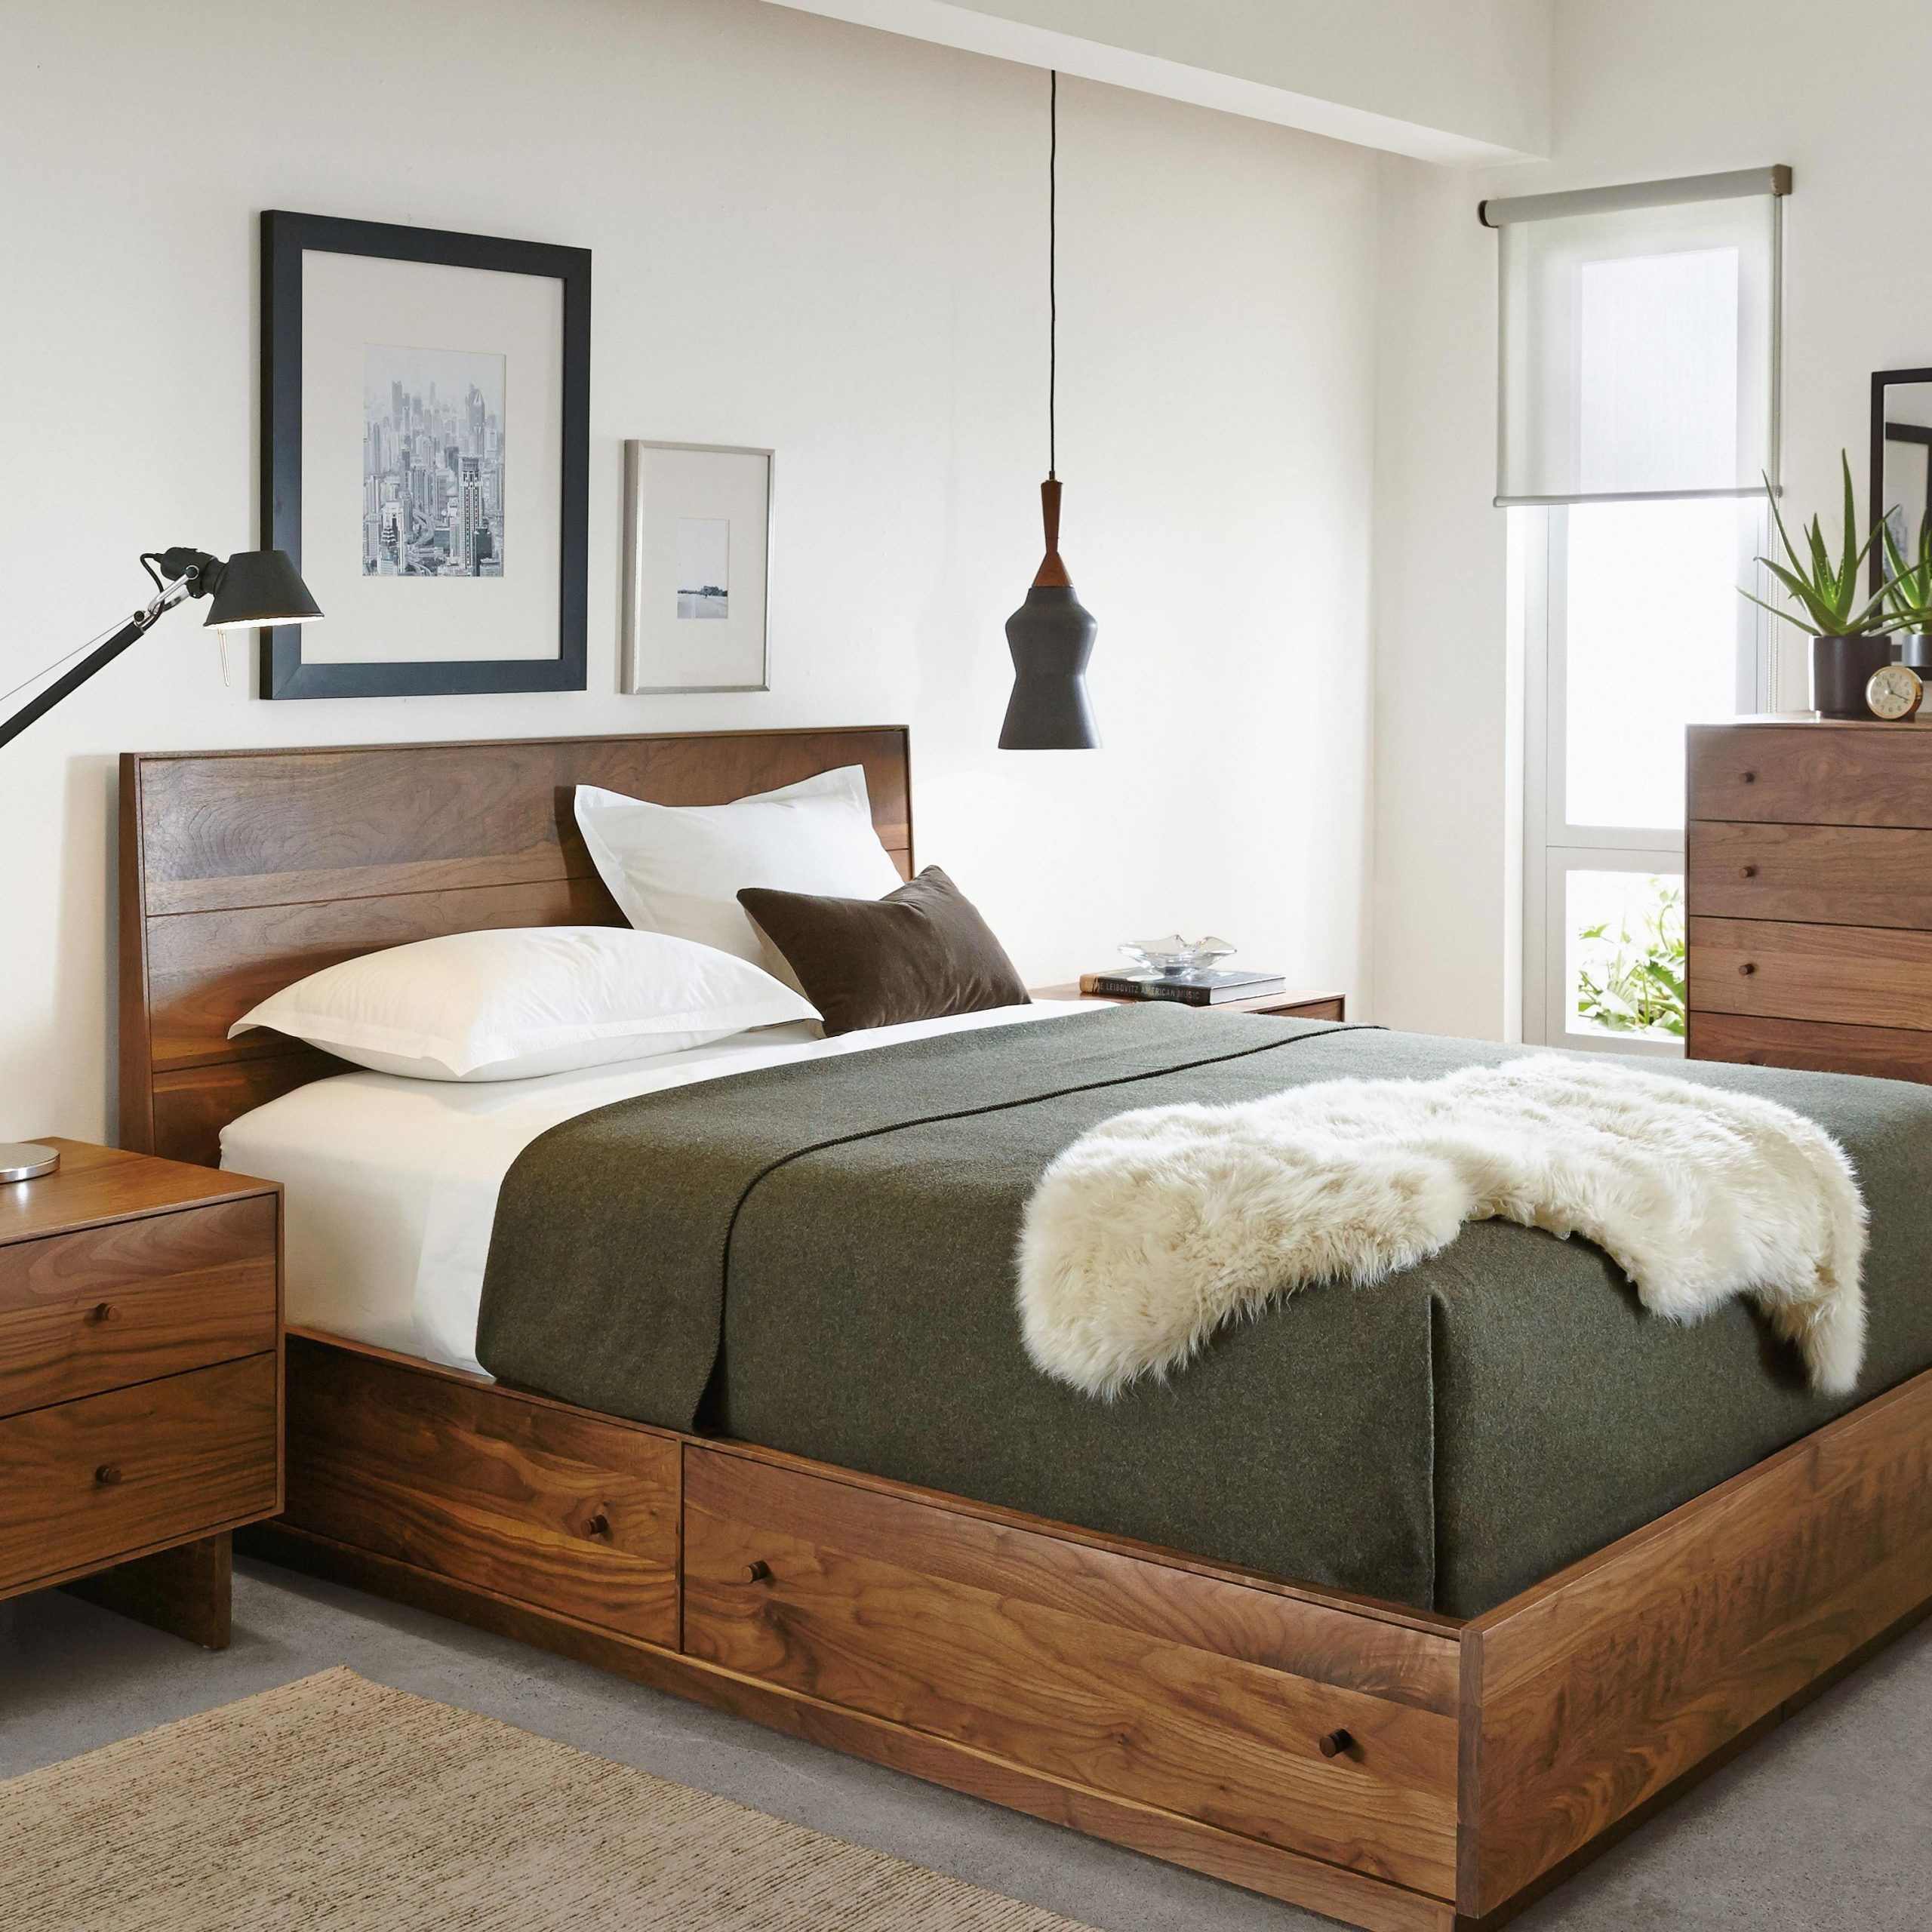 Bed Backboard Diy King Headboard Living Room Sectional Couches